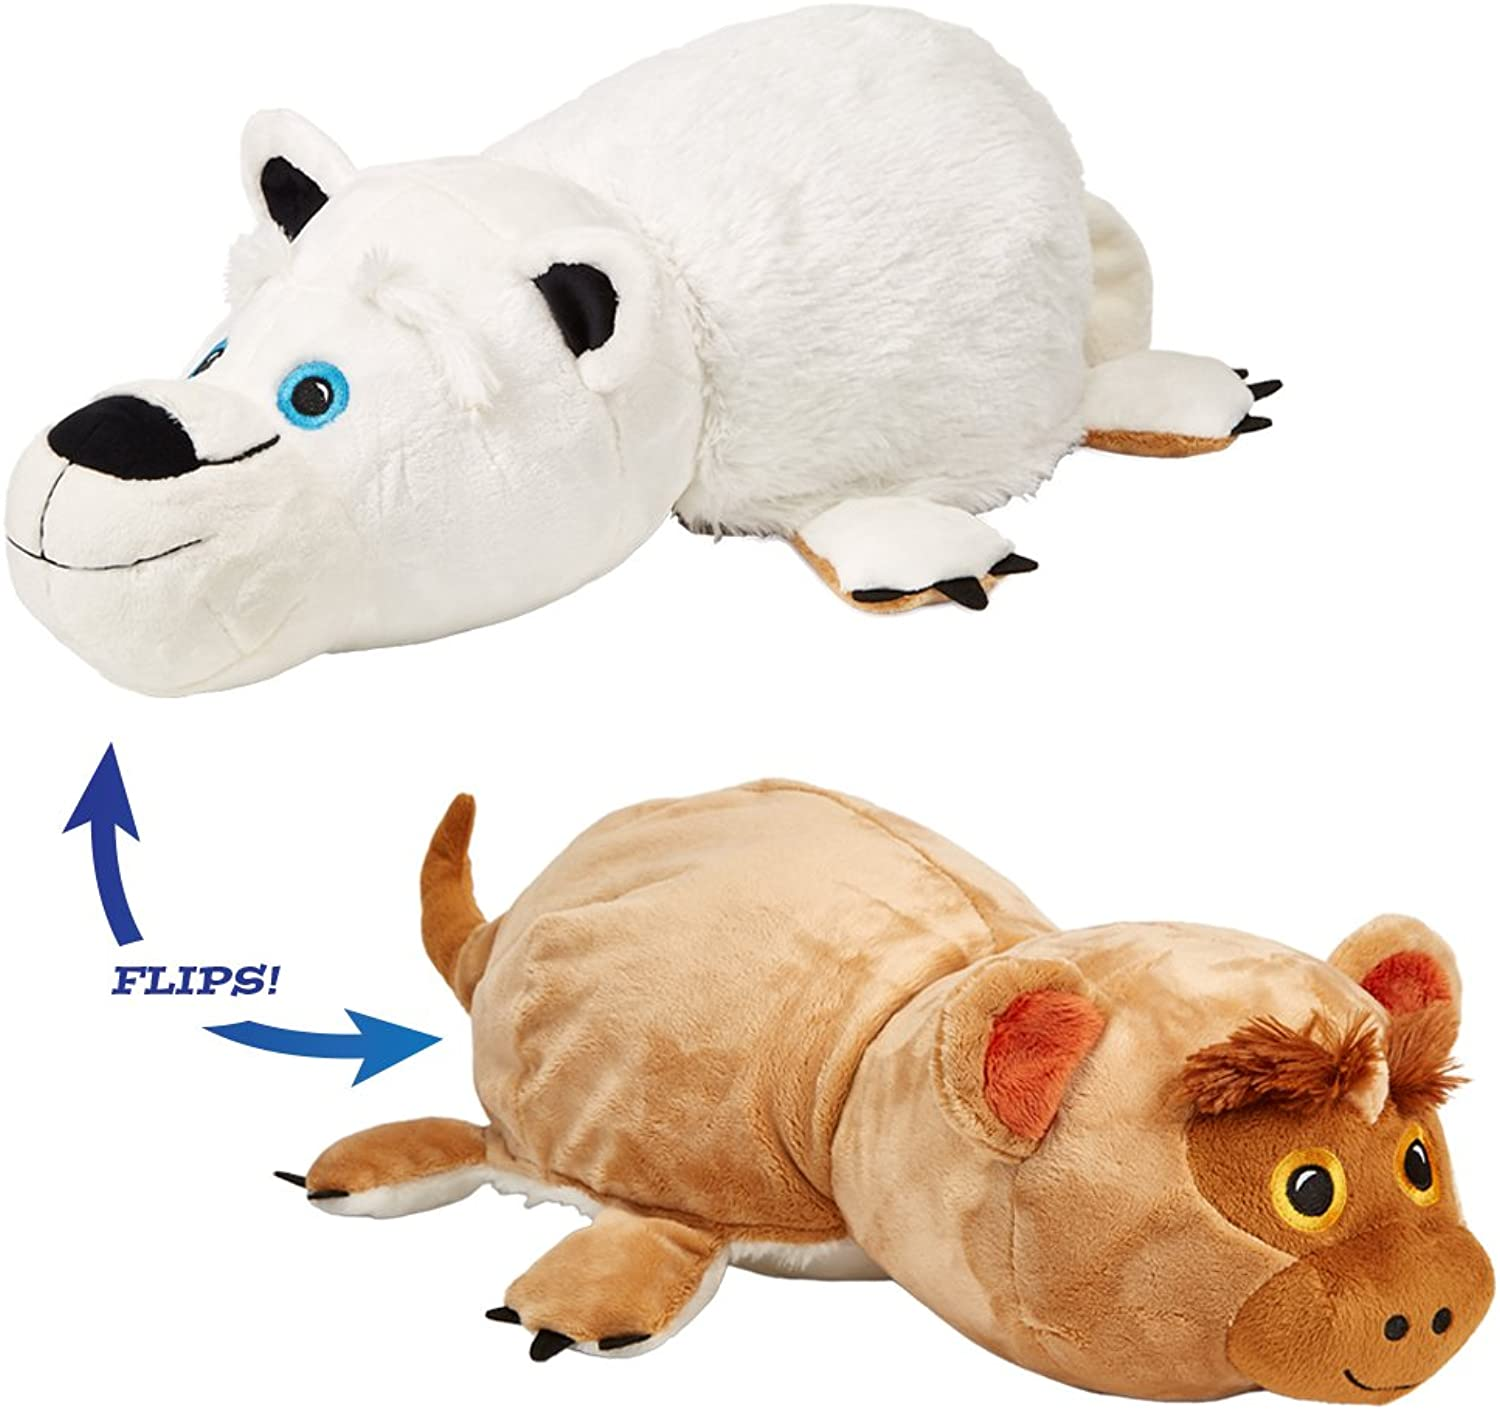 Flip Pets The Amazing Toy Thats Two Pets in one for Everyone  (Polar Bear Monkey)